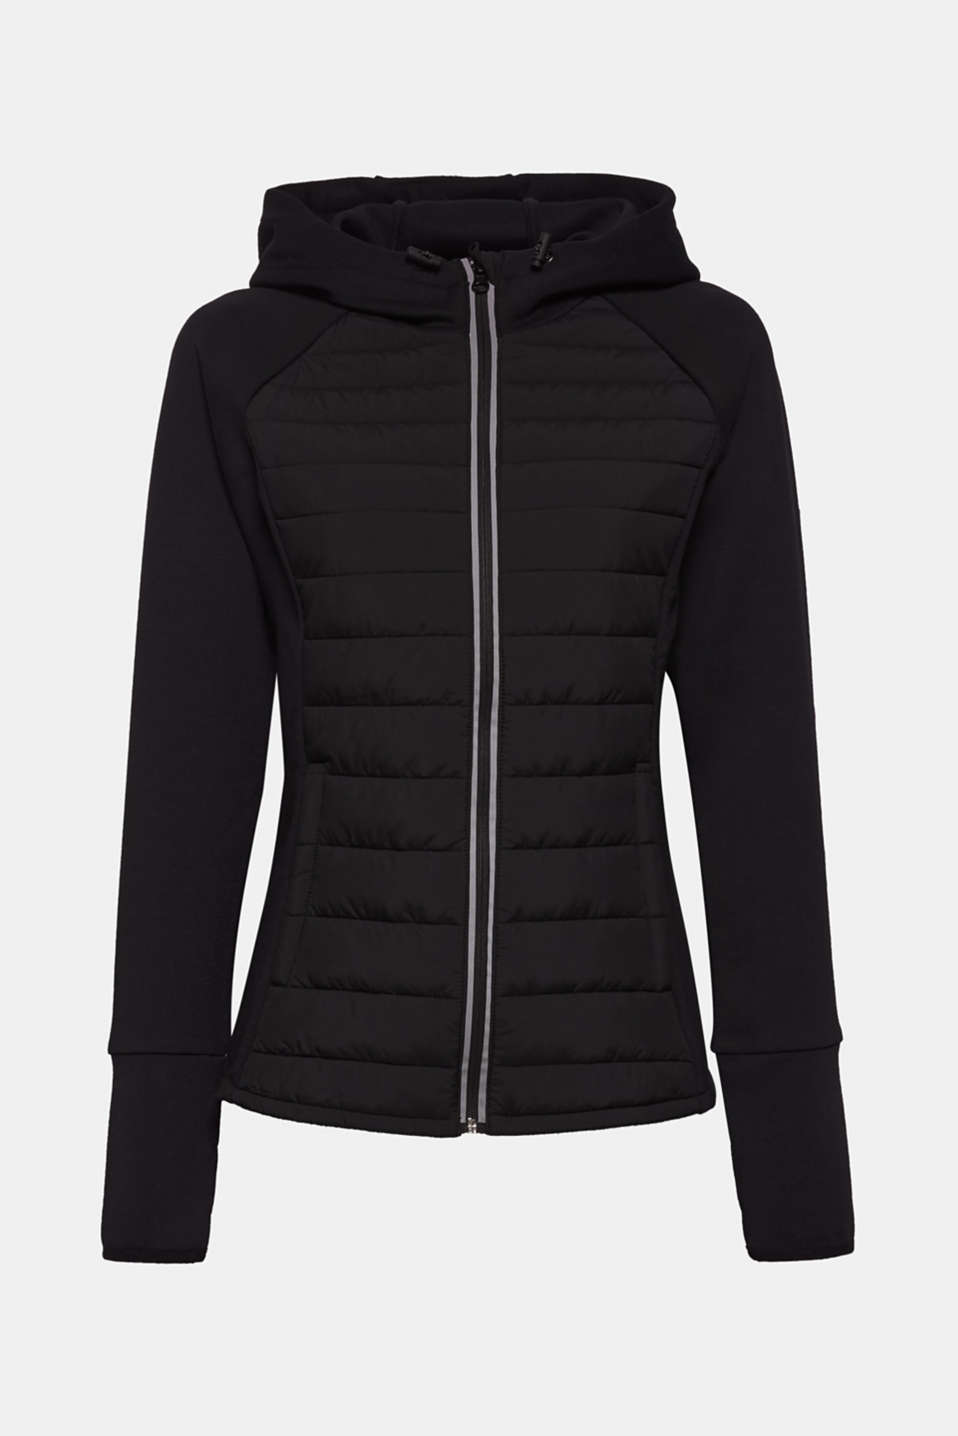 Hooded jacket in a mix of materials, BLACK, detail image number 6